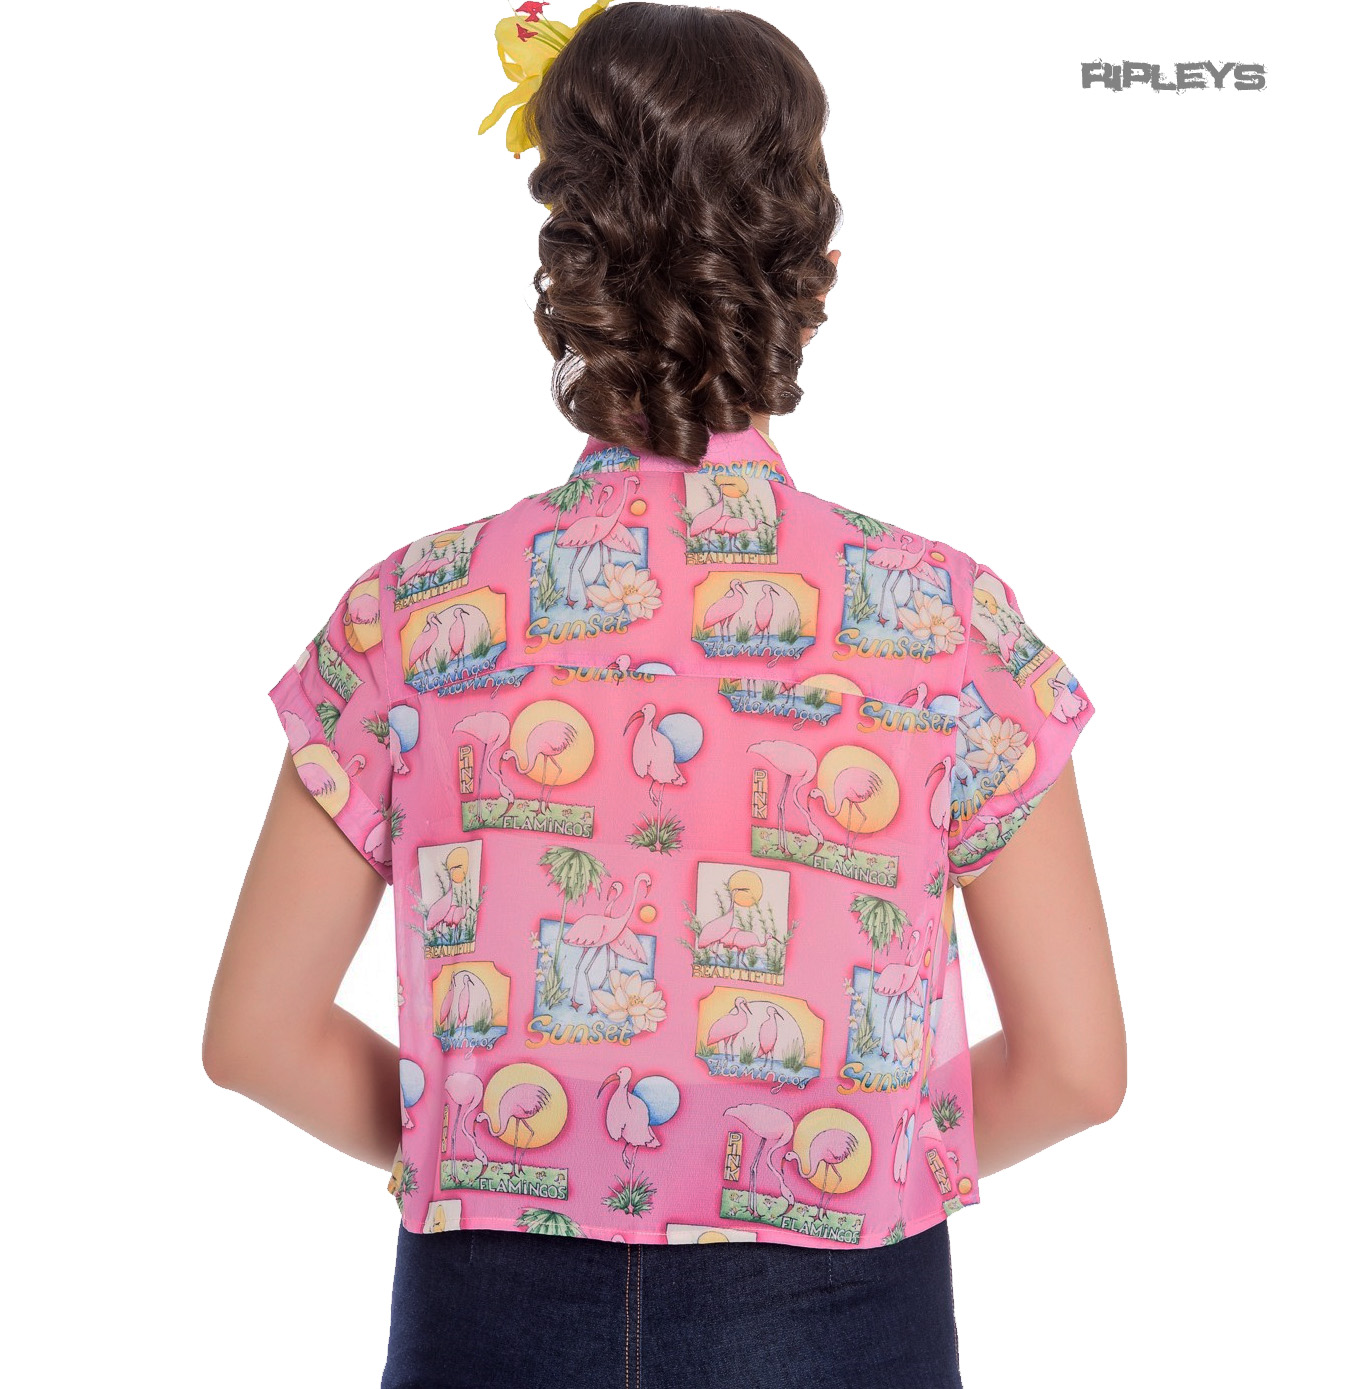 thumbnail 15 - Hell Bunny 50s Retro Top Pink Flamingo MAXINE Cropped Blouse Shirt All Sizes